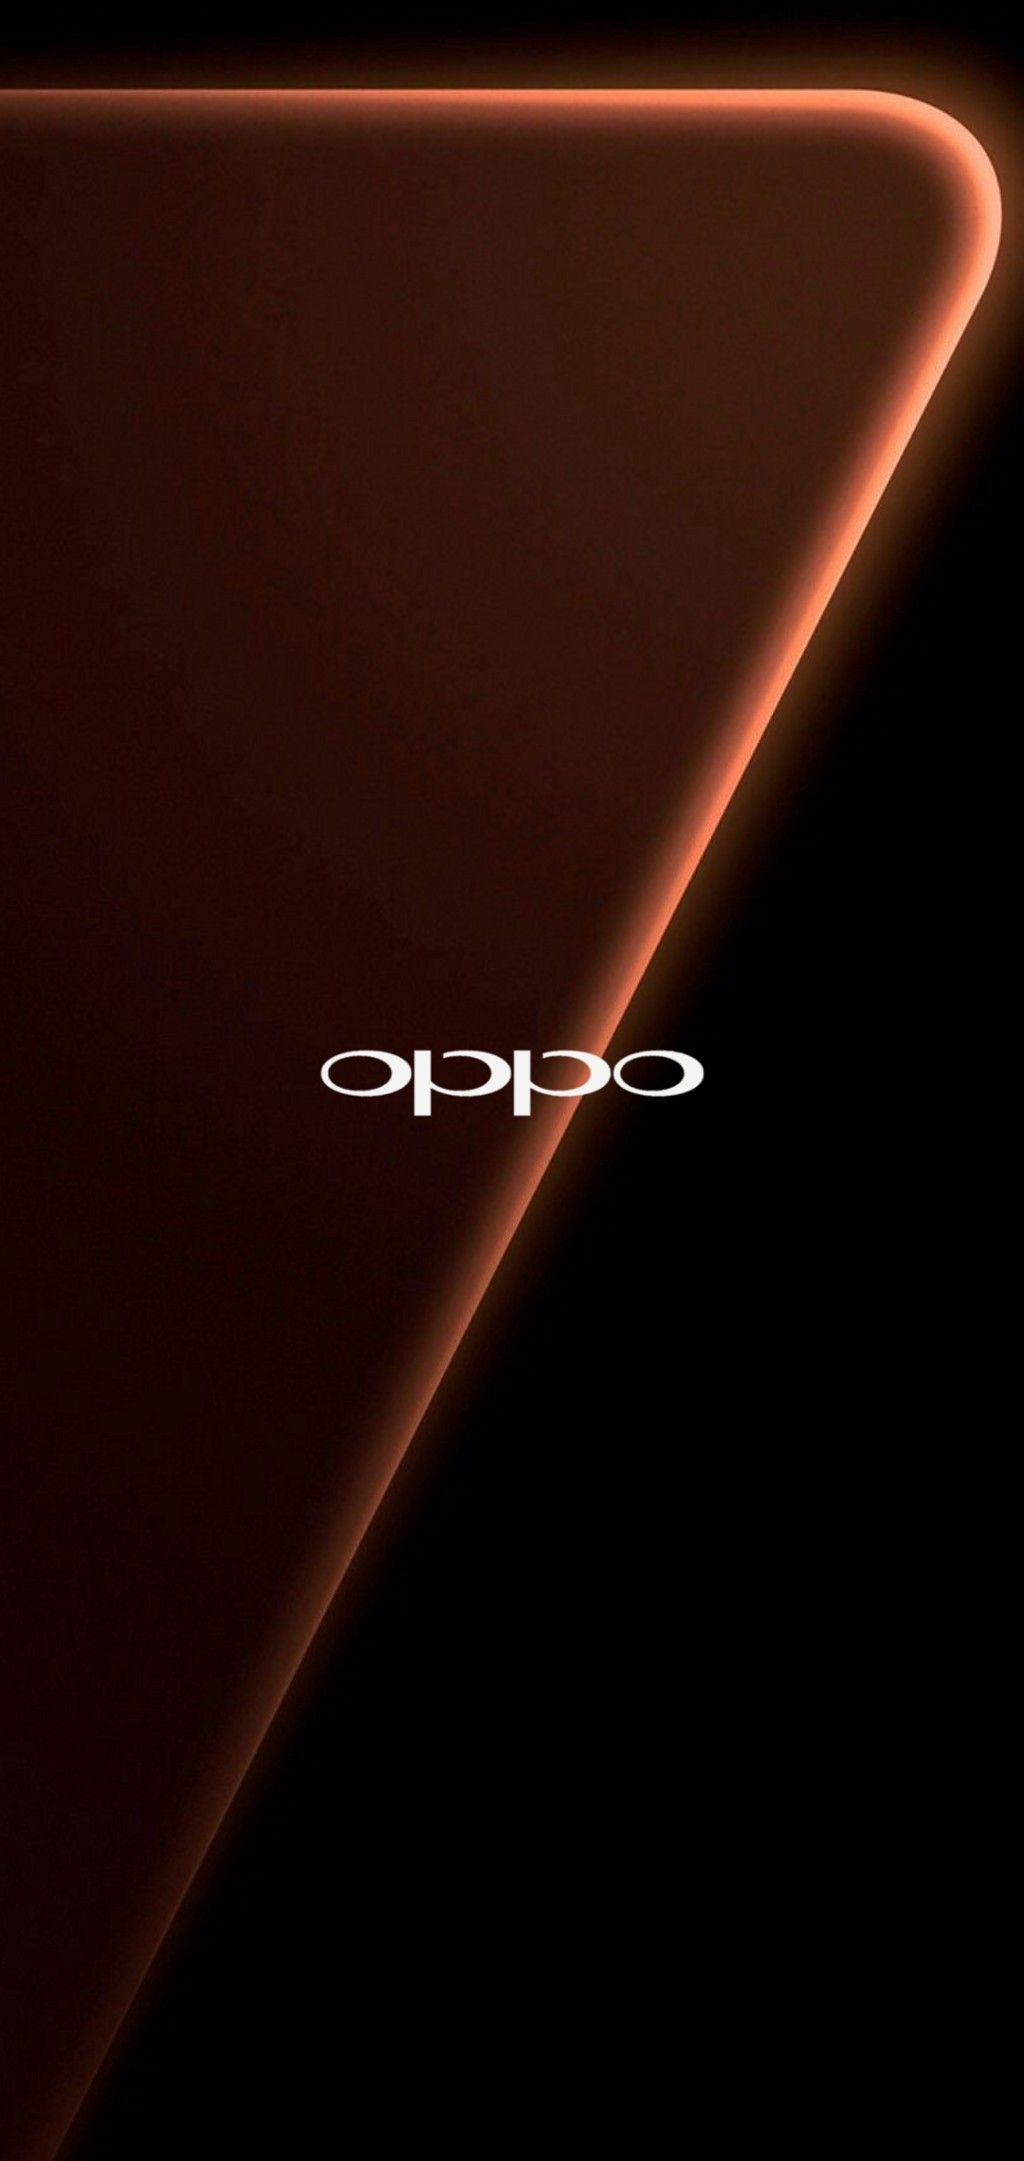 Oppo F7 1080x2280 Lockcreen Oppo F7 1080x2280 In 2019 Pinterest